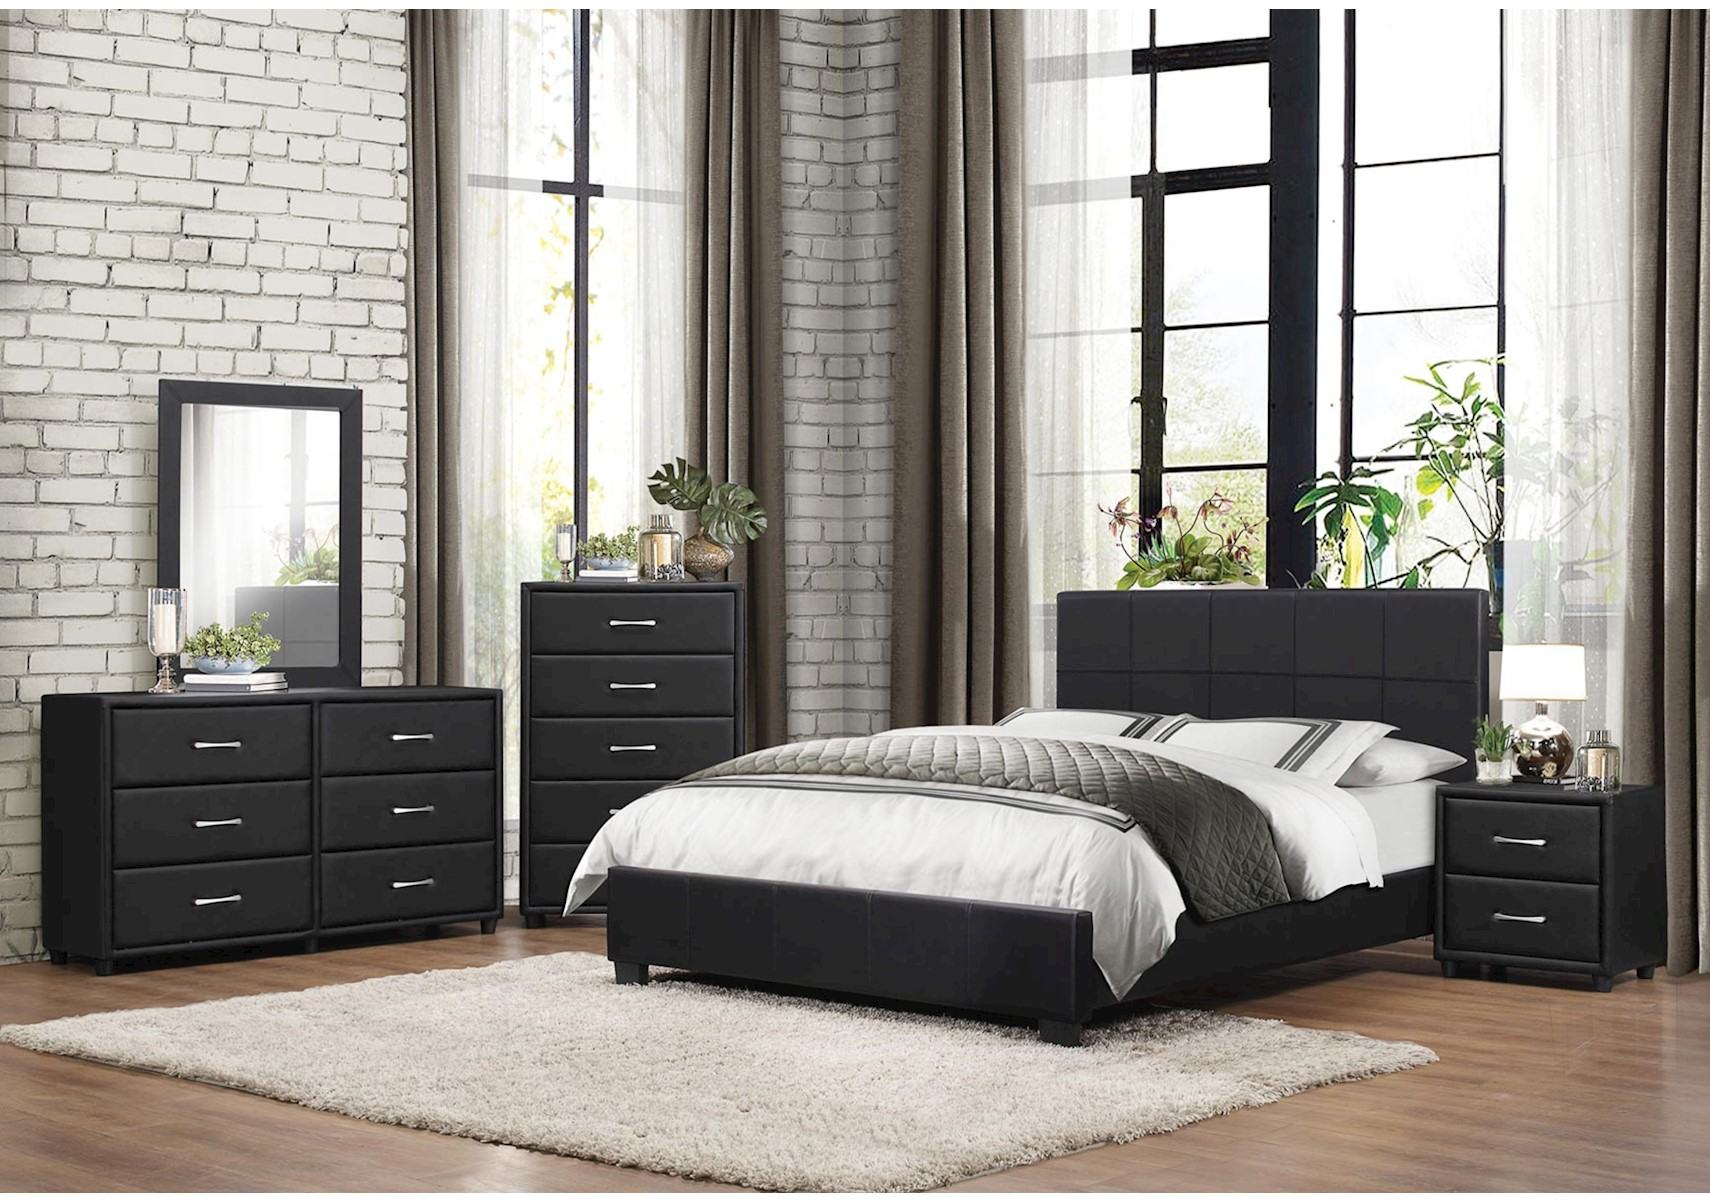 Lacks | Onyx 4-Pc Queen Bedroom Set